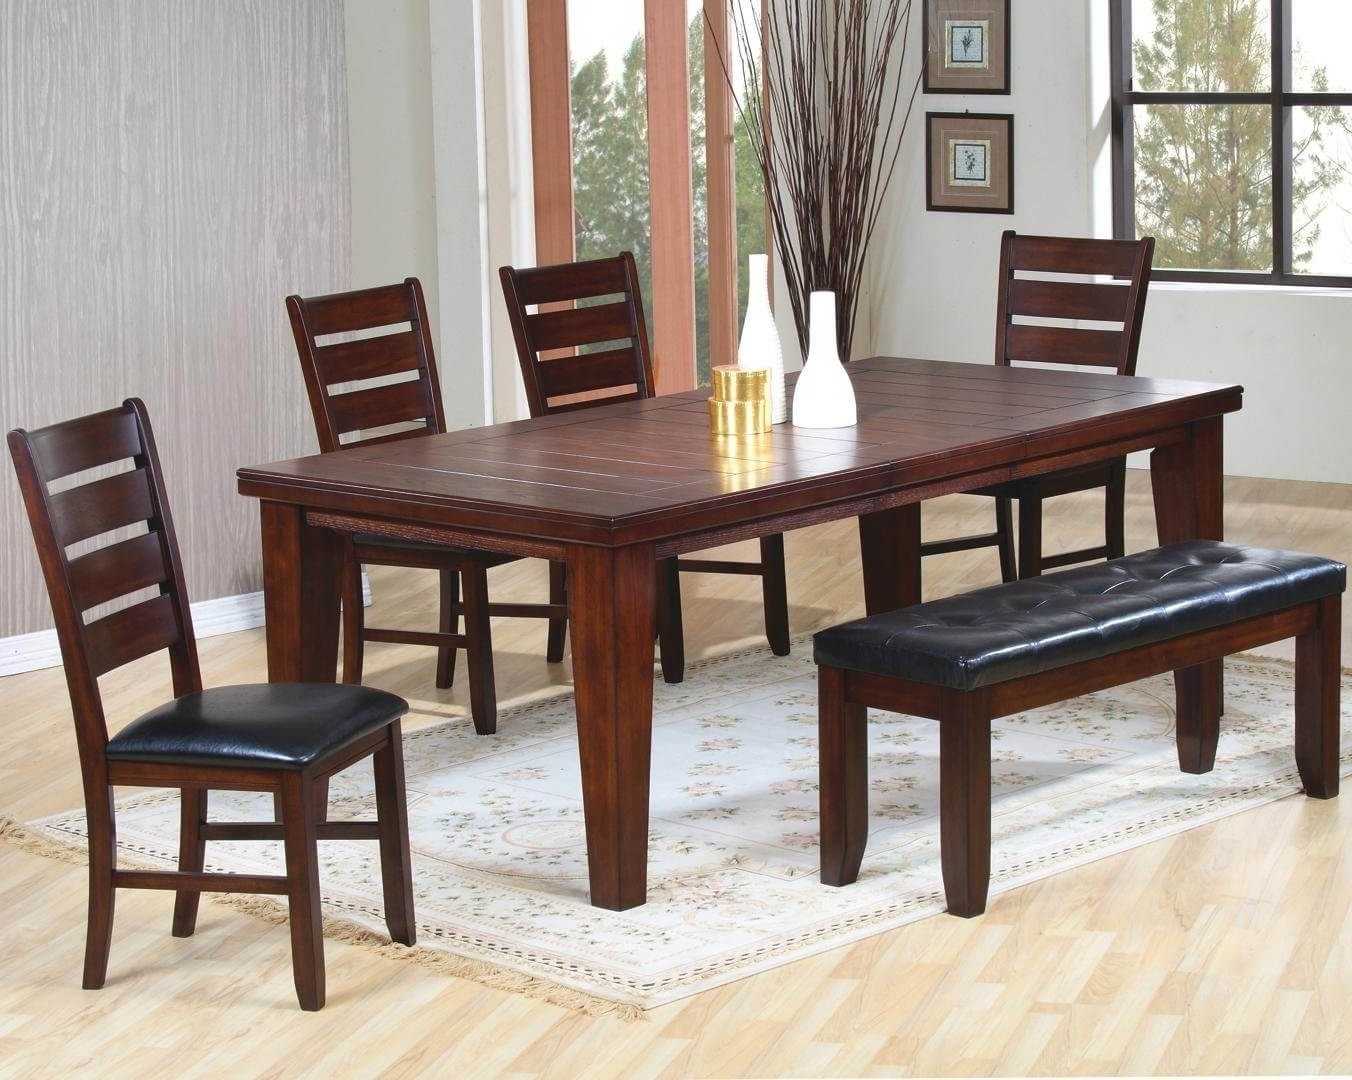 6 Seat Dining Tables With Regard To Latest 26 Dining Room Sets (Big And Small) With Bench Seating (2018) (Gallery 18 of 25)